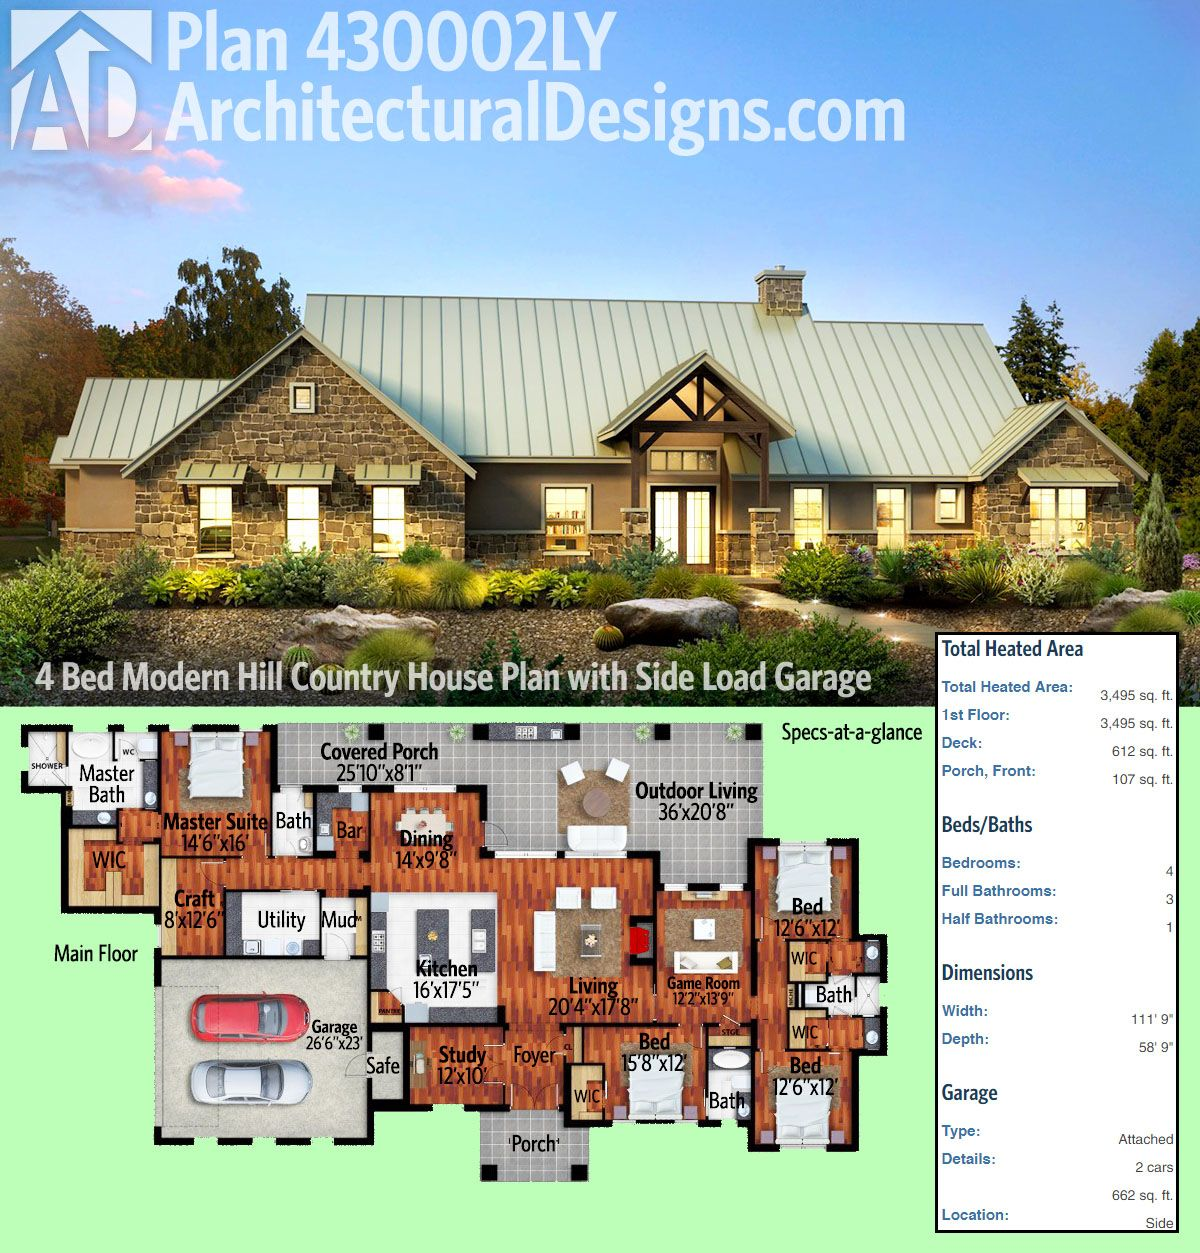 Plan 430002LY Modern Hill Country House Plan with Side Load Garage – Side Load Garage Ranch House Plans